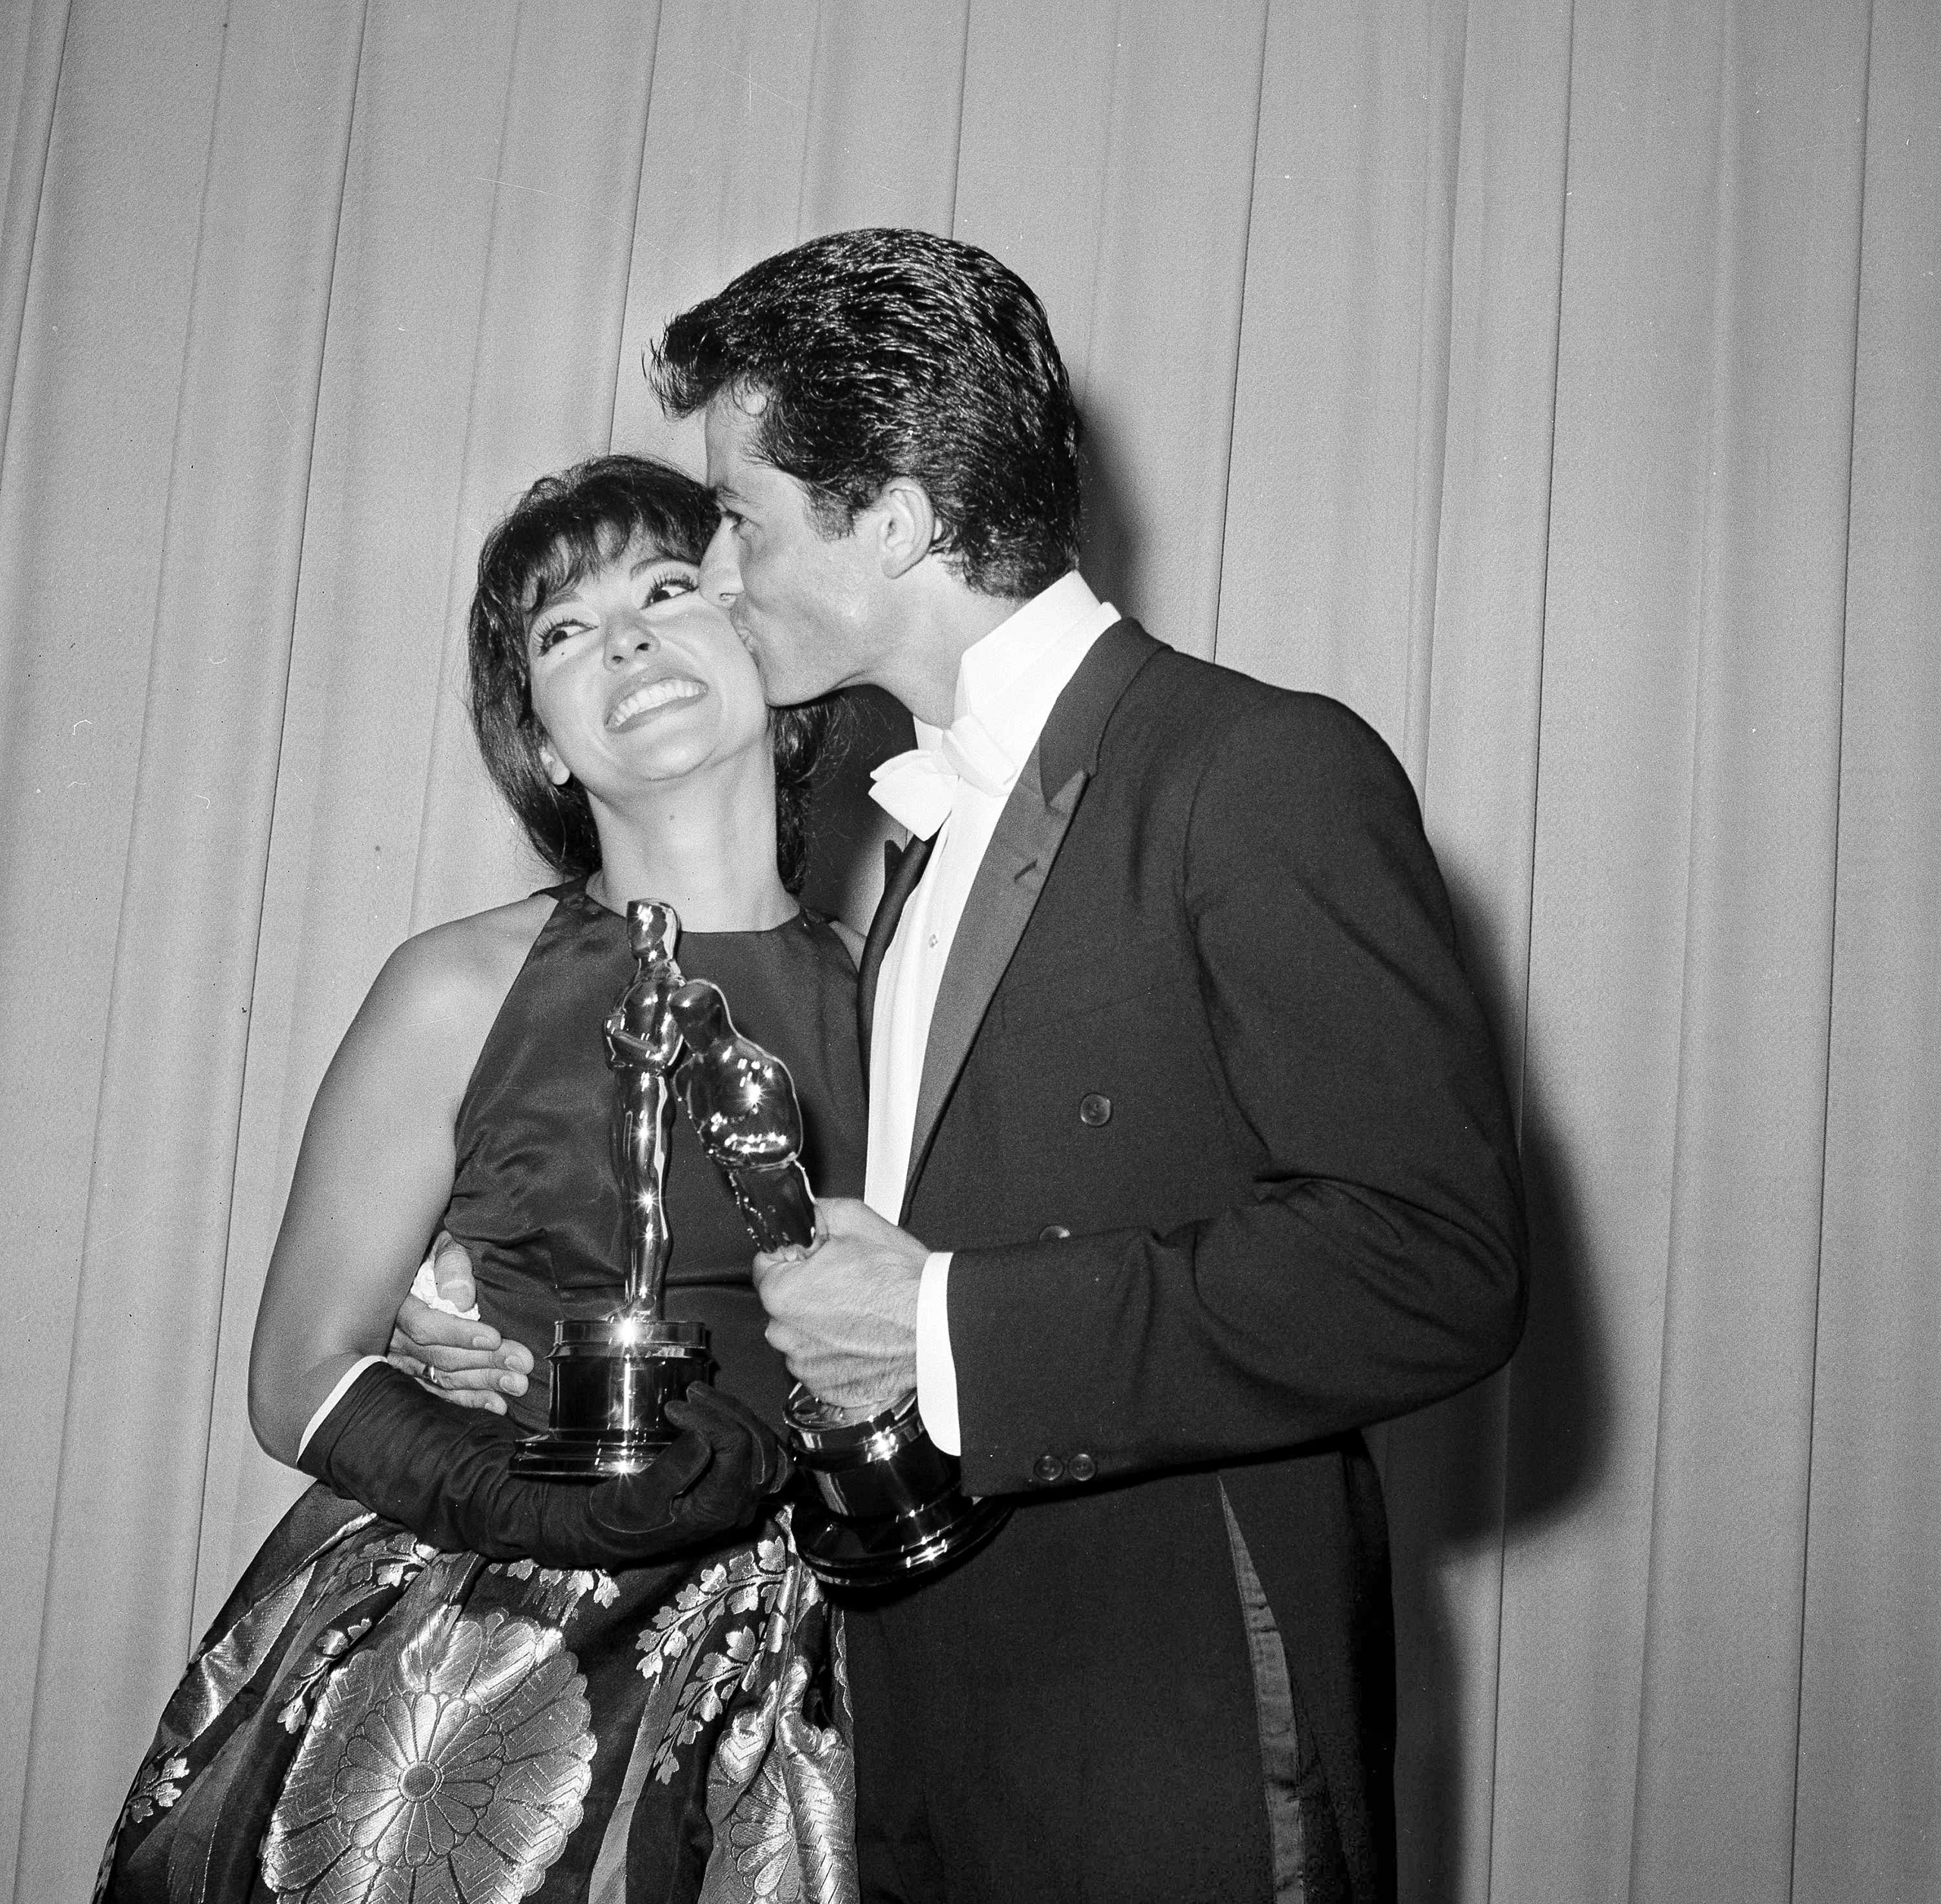 Rita Moreno gets a kiss from dancer and actor George Chakiris after they each won Academy Awards, 1962.